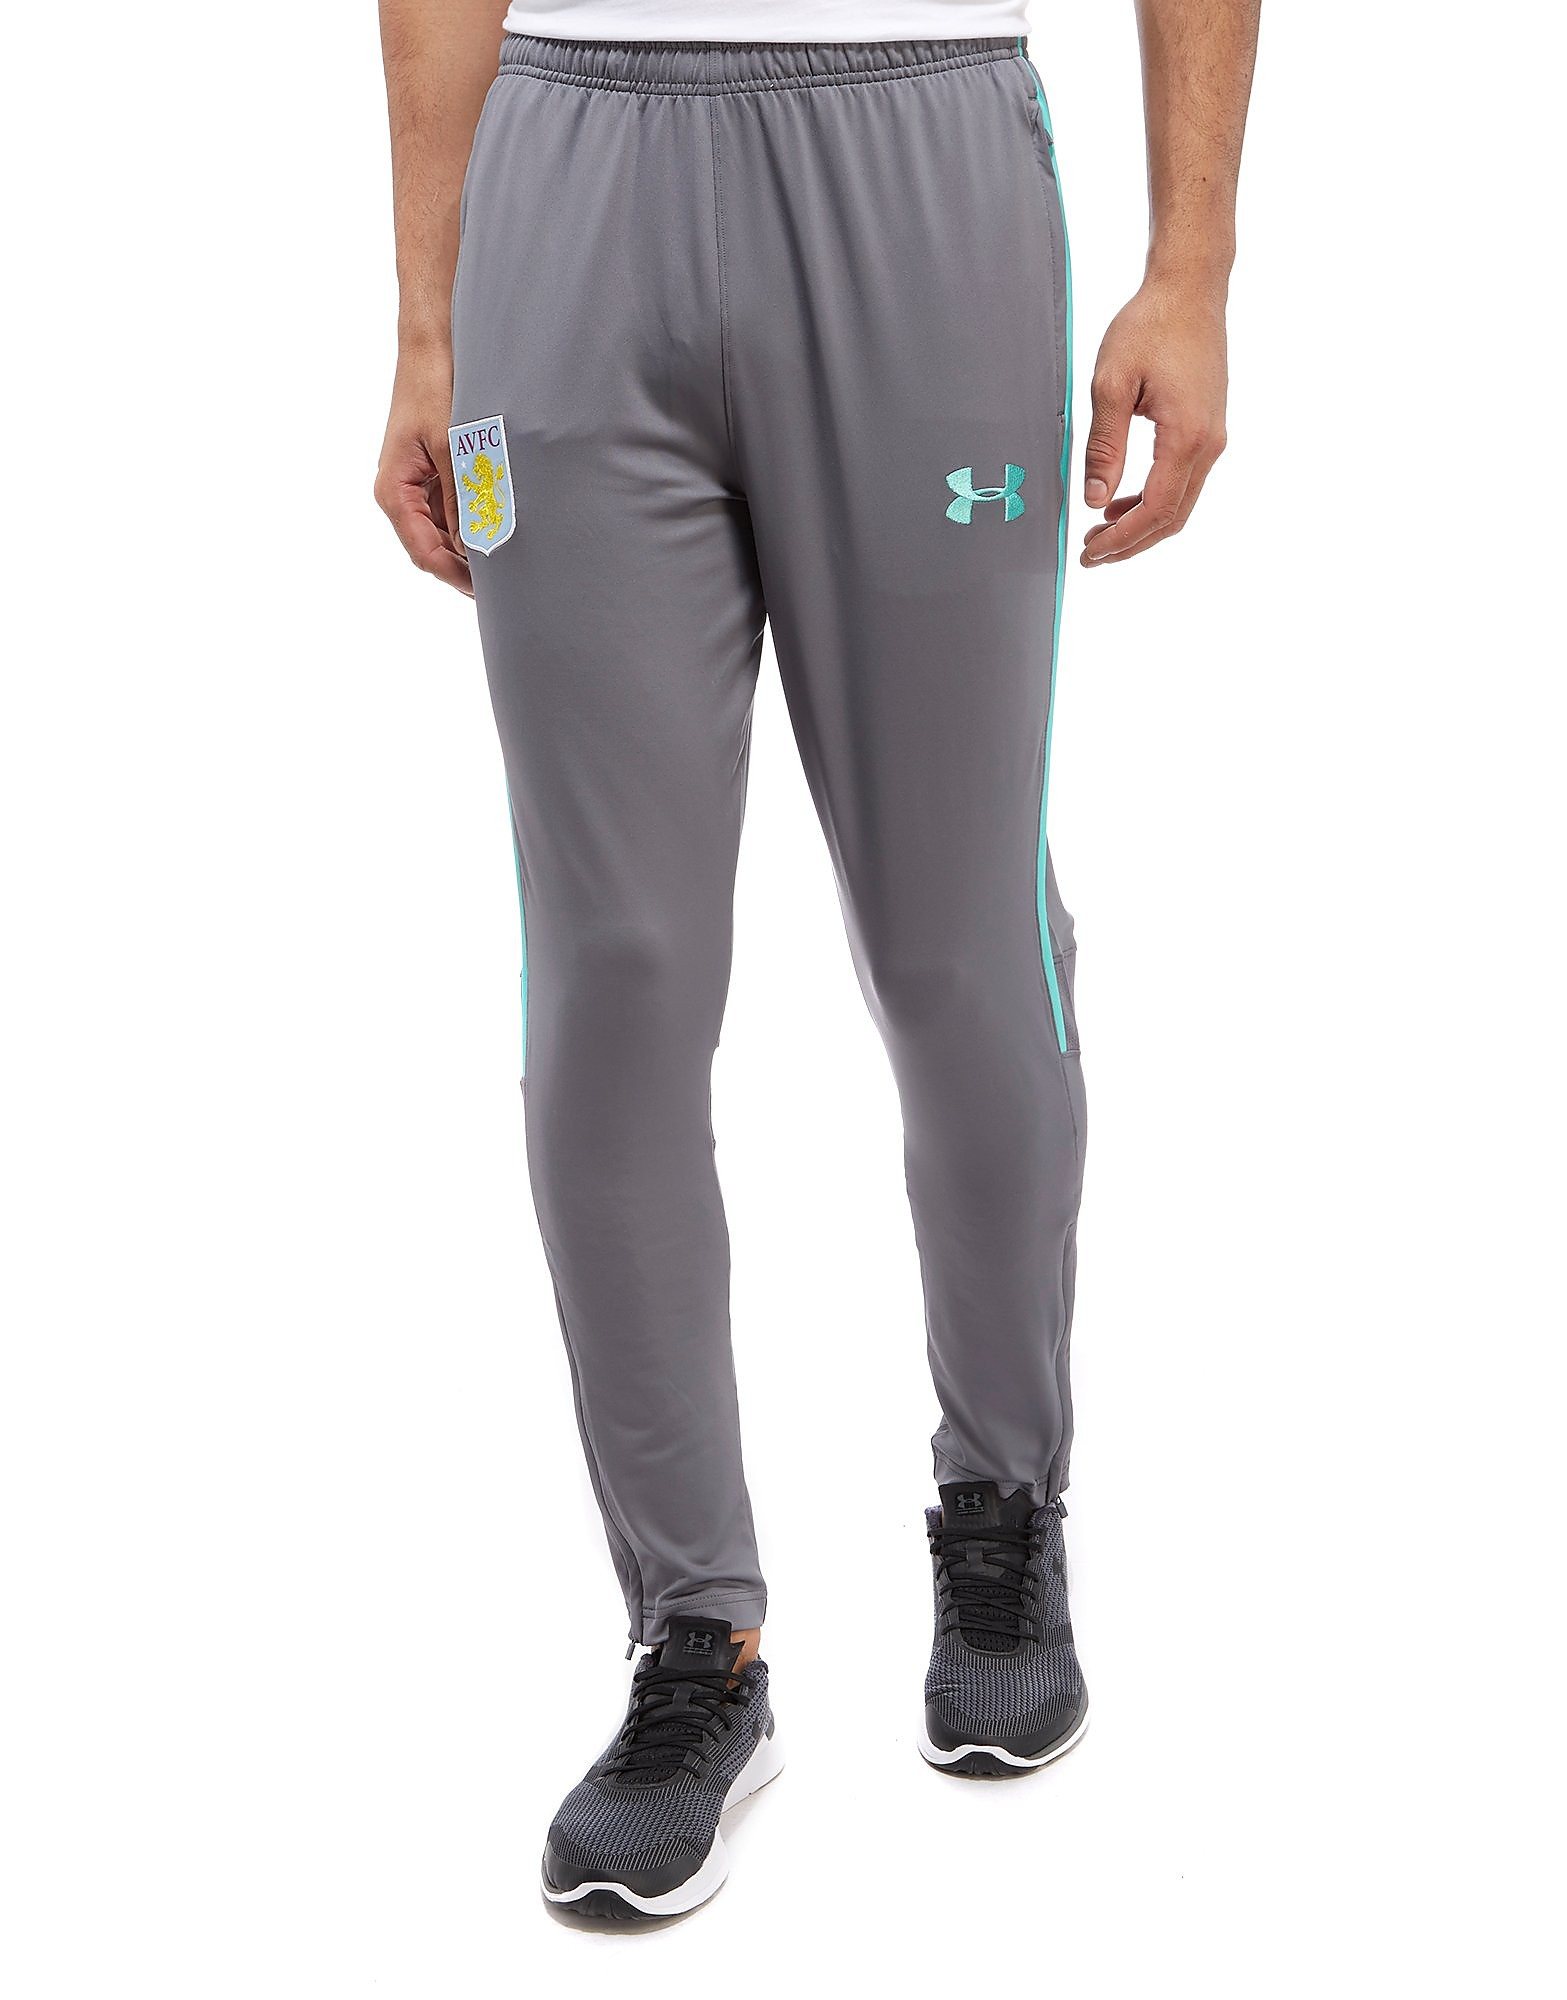 Under Armour Aston Villa 2017 Training Pants